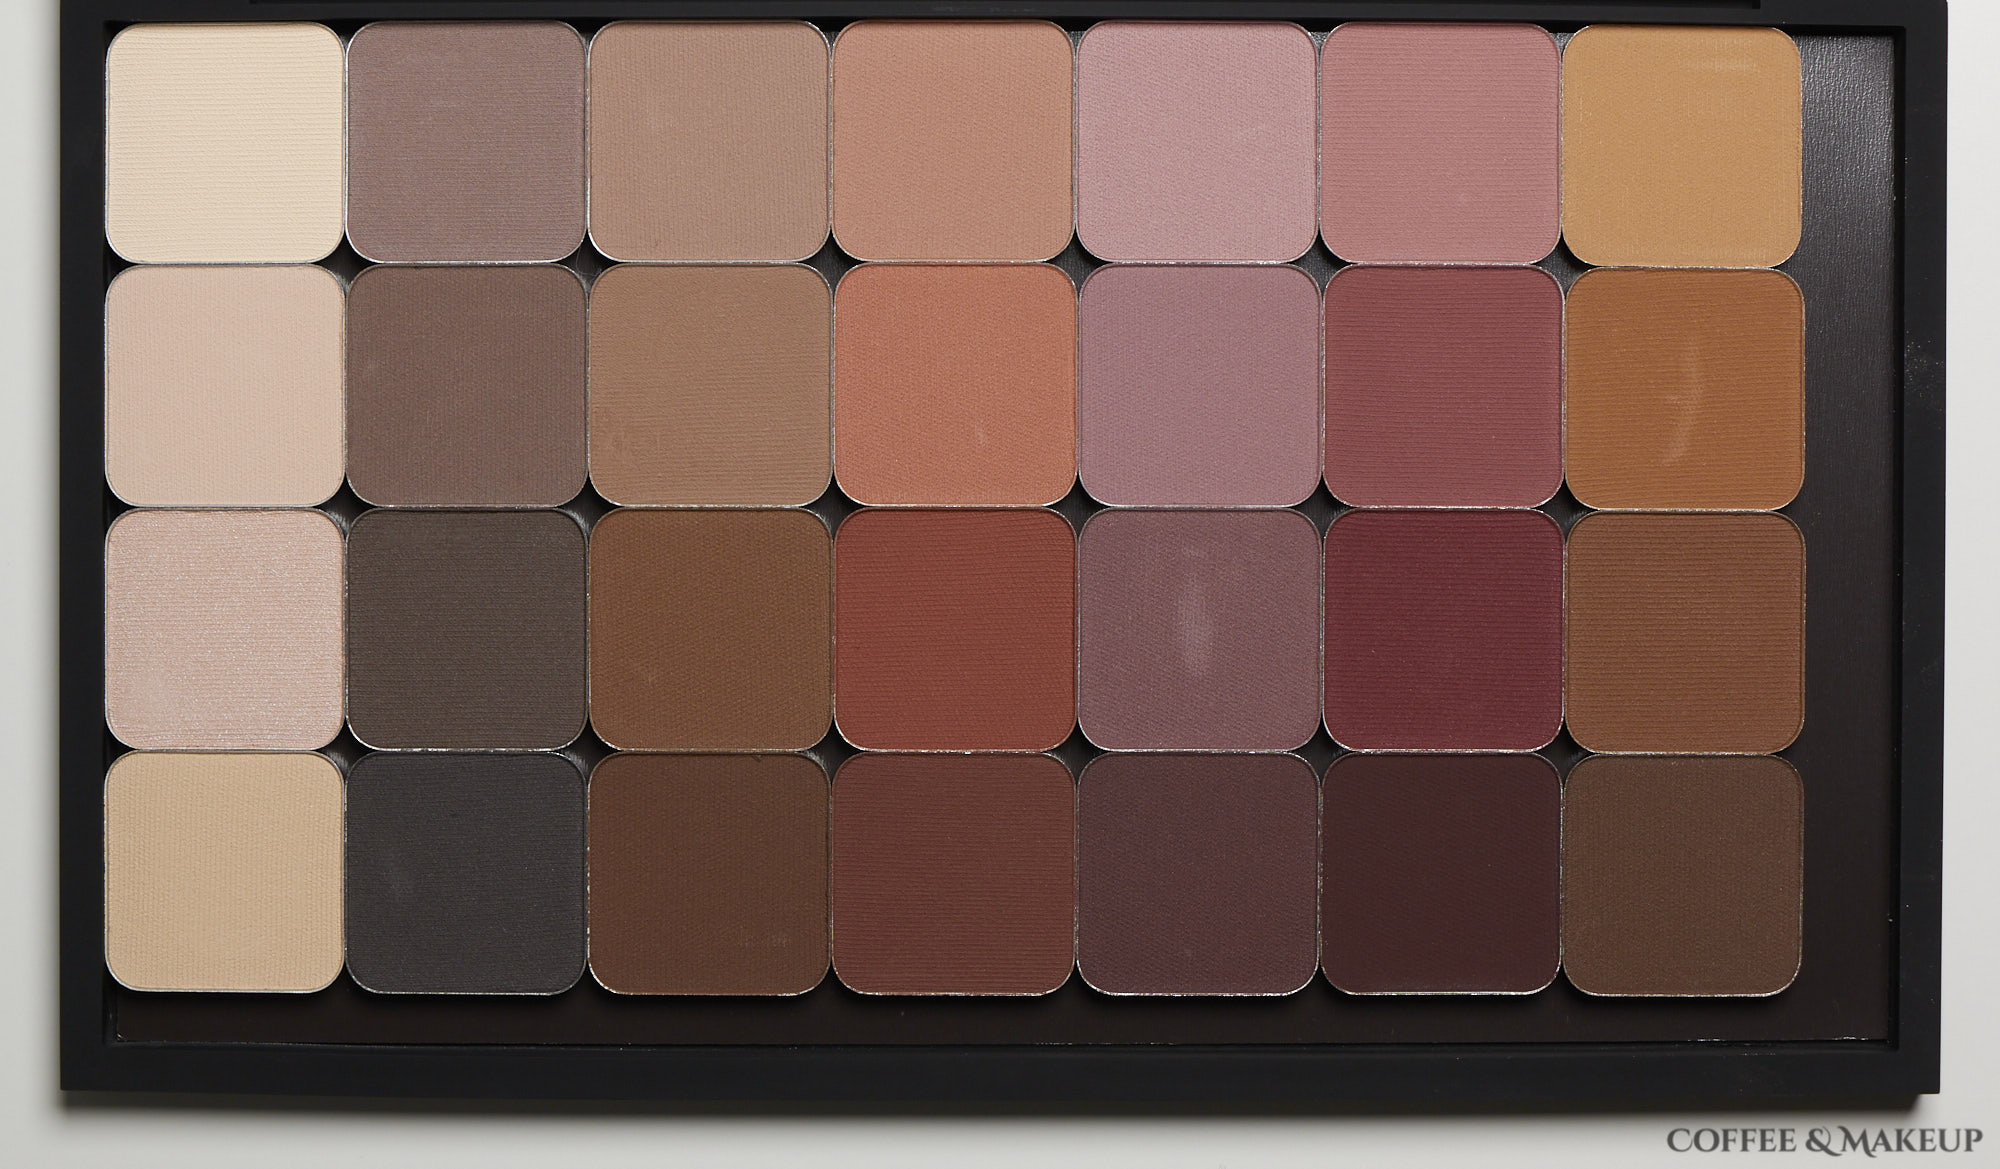 Makeup Geek Matrix Neutral Palette | Makeup Geek Eyeshadows